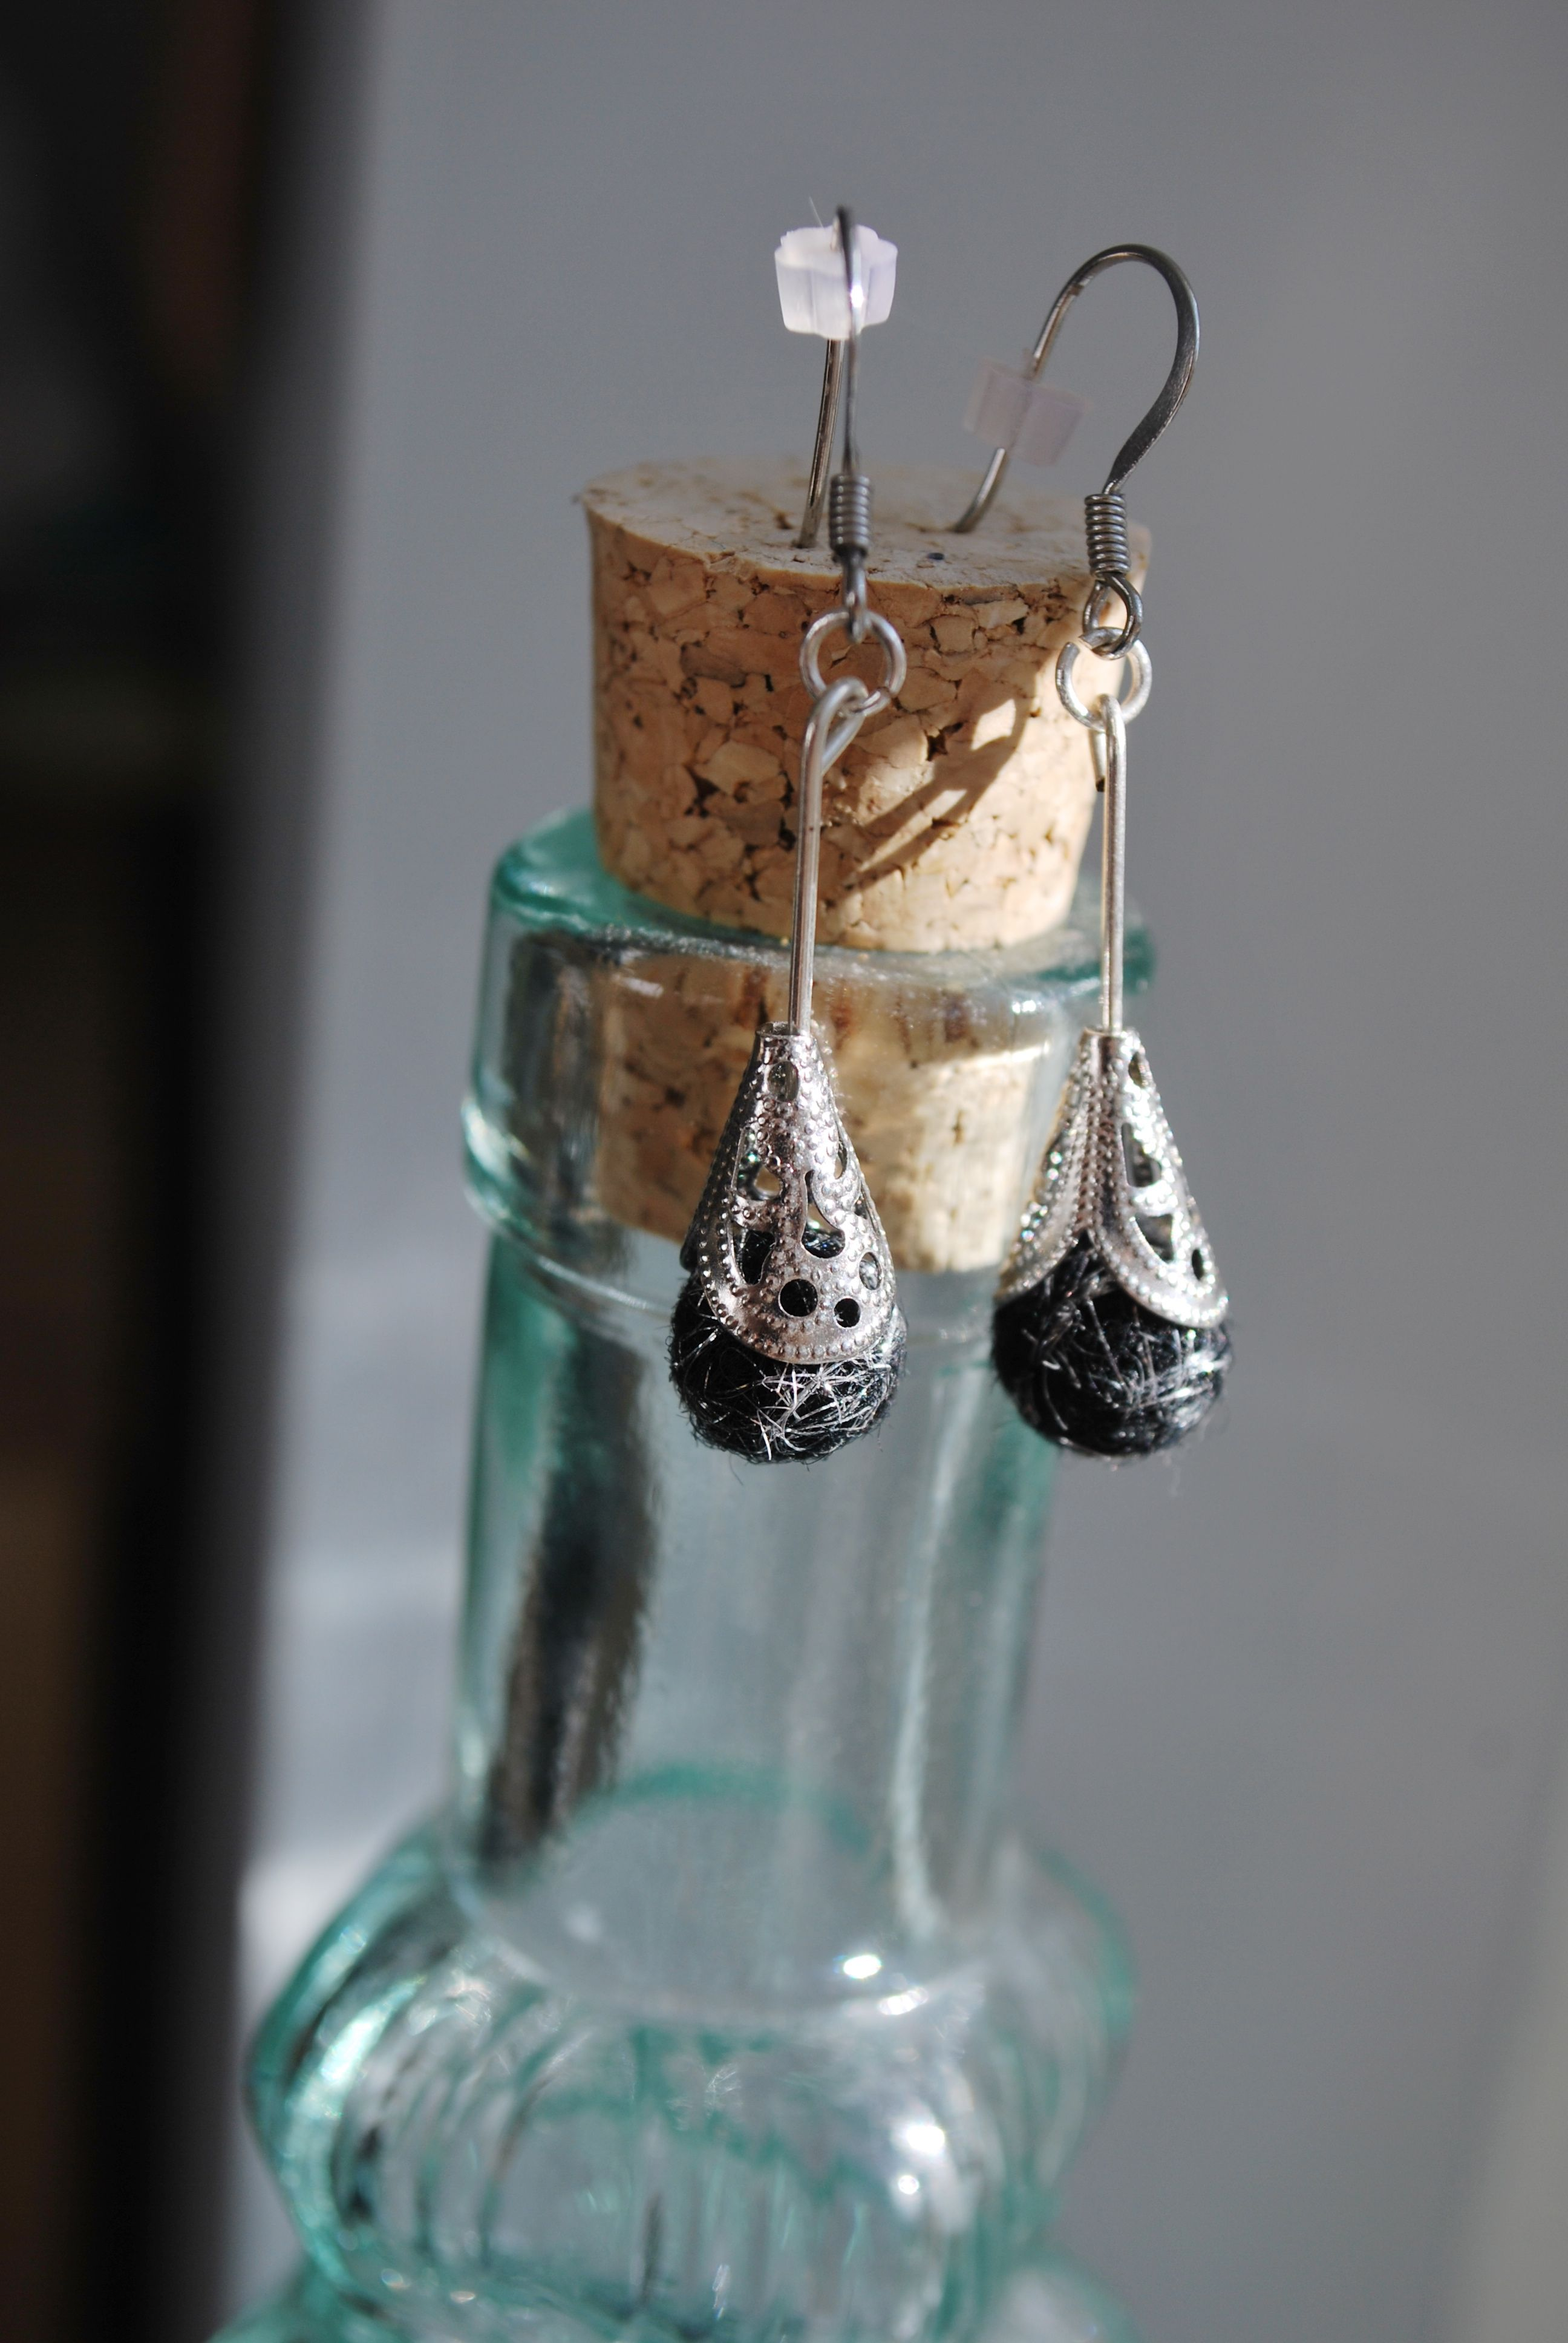 Classic black needle felted earrings. These lovely earrings are mixed with black and metallic silver materials and topped with ornate metal pieces to give that sparkle look.  https://www.etsy.com/shop/ArtByBarks